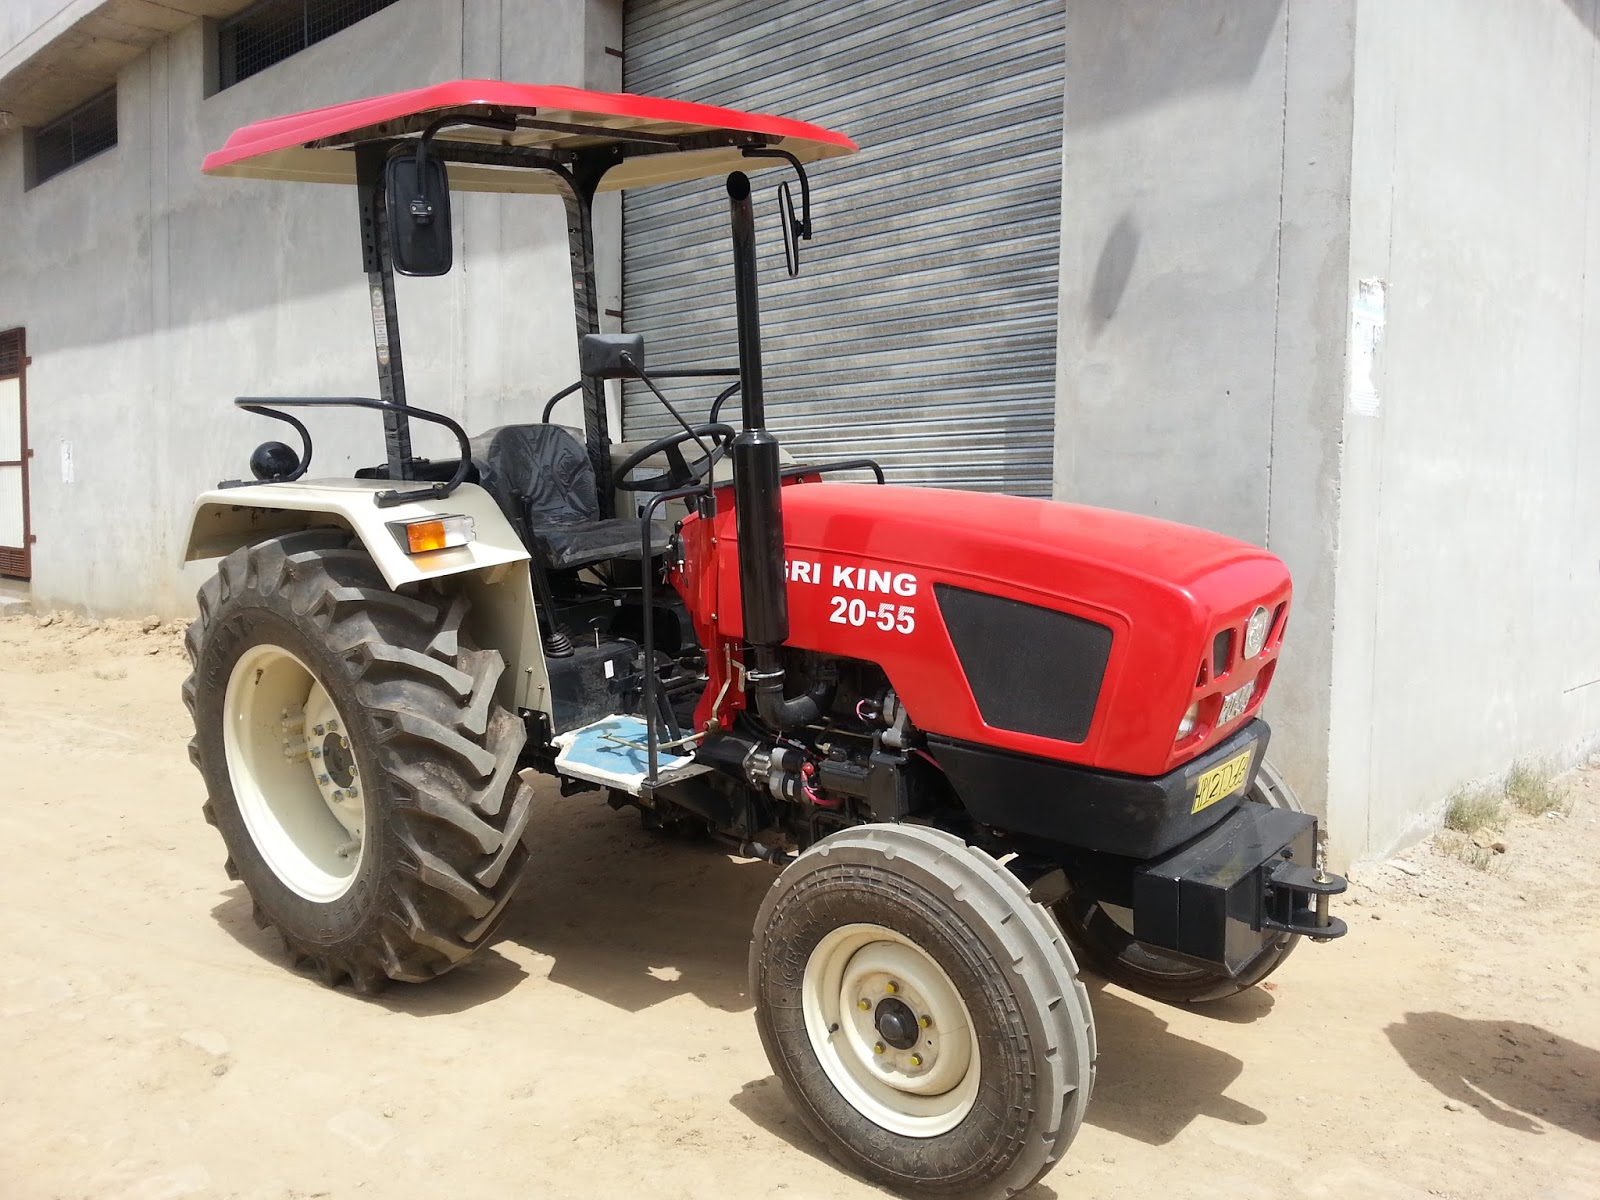 Tractor Side Mirrors : Bablu kalsi engg works all tractor accessories agri